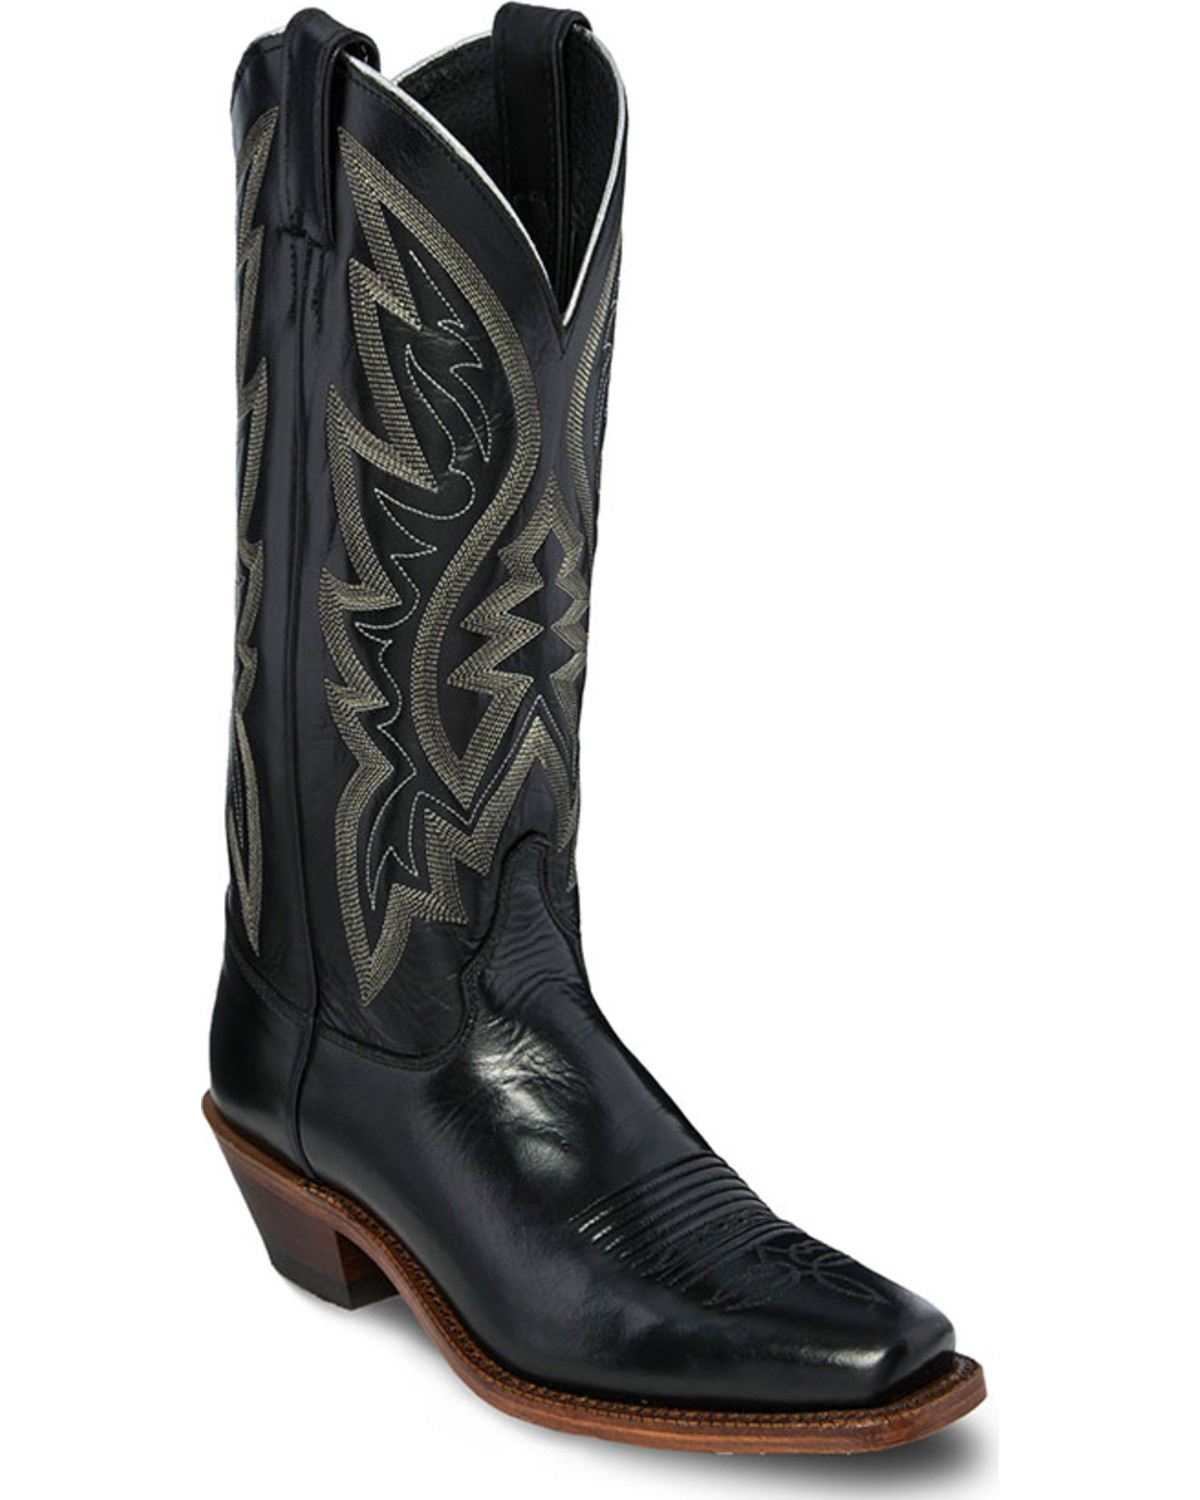 Innovative Justin Boots Womens Square Toe With Amazing Photo In South ...